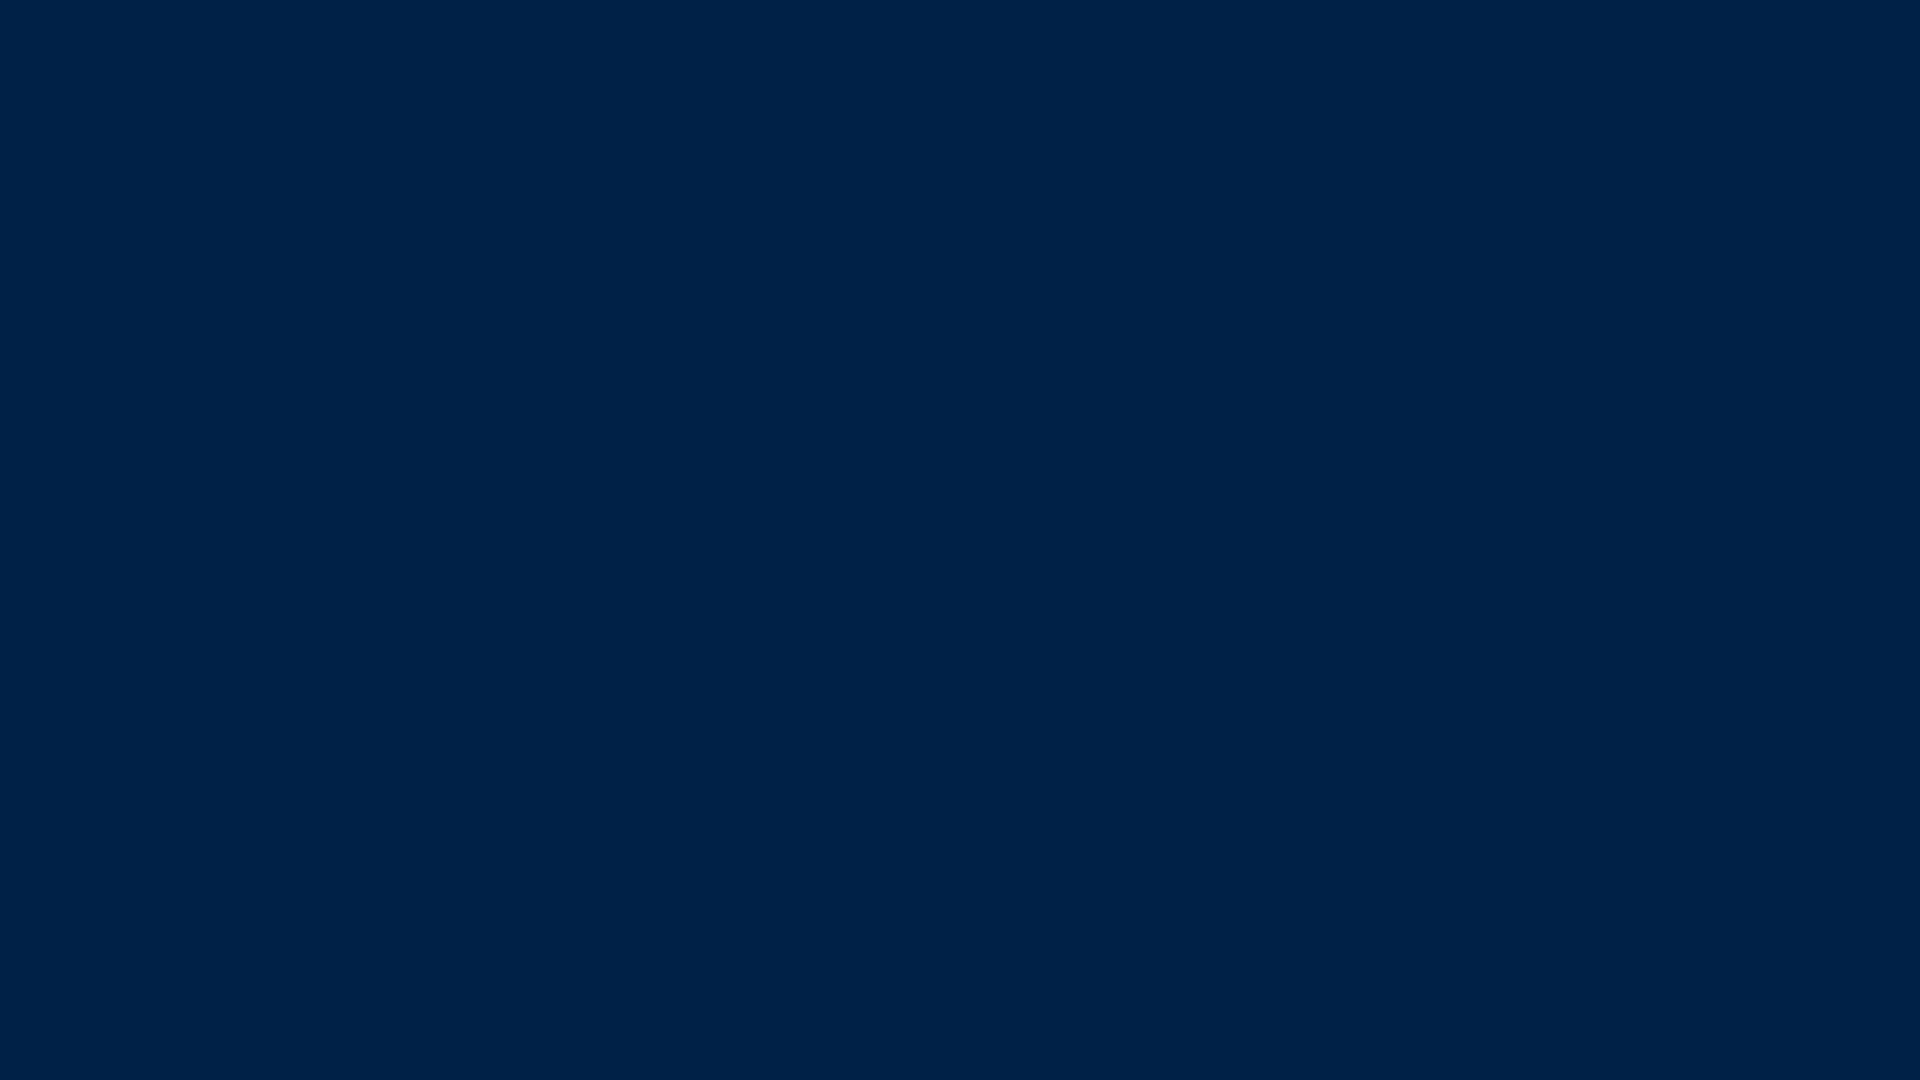 1920x1080 Oxford Blue Solid Color Background